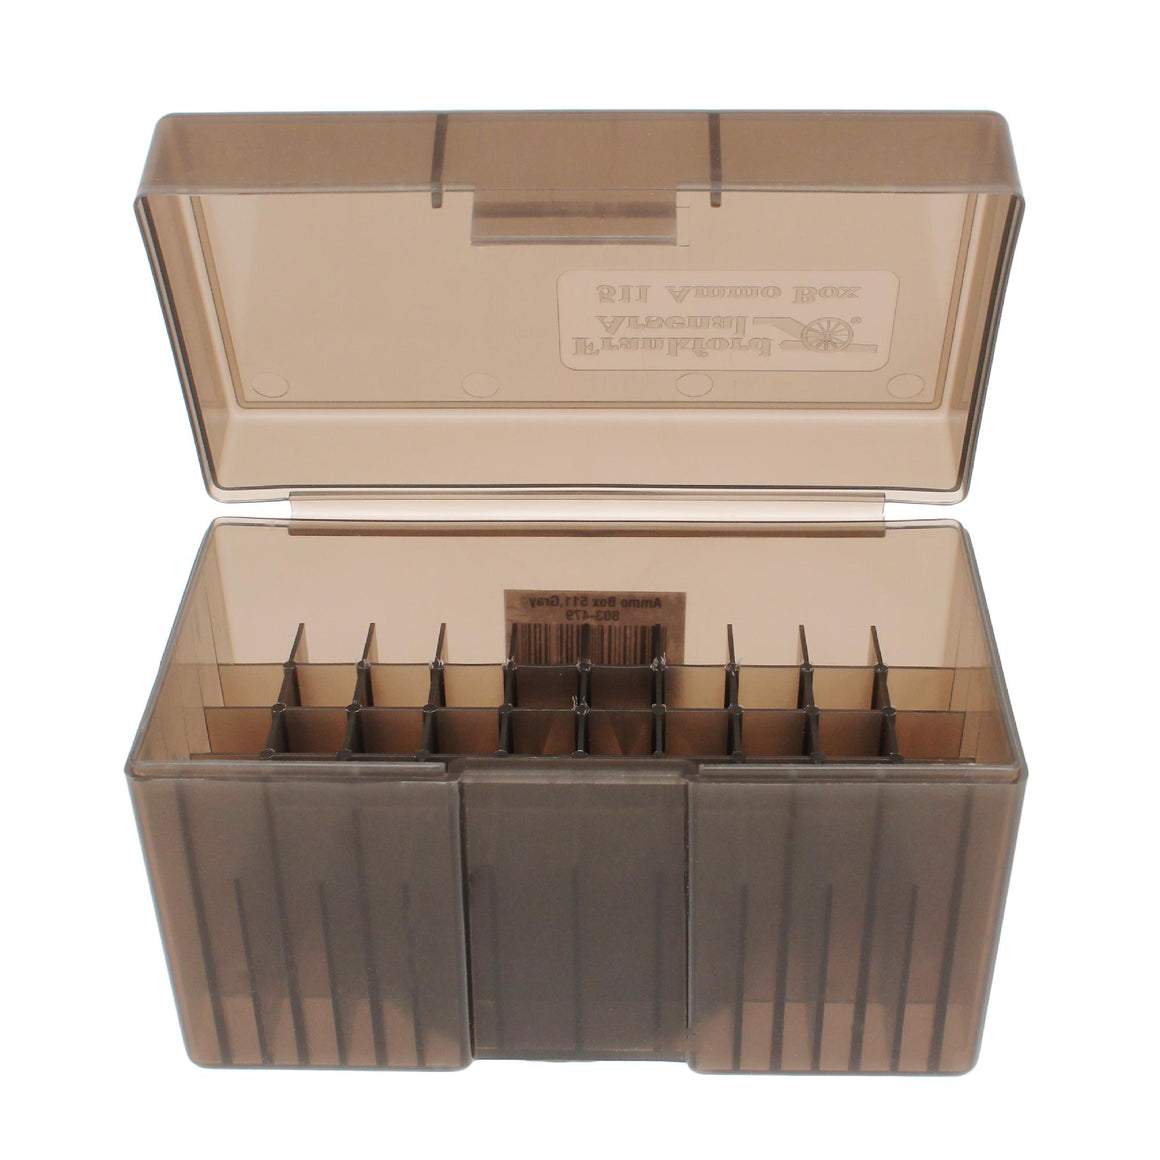 #511 - Gray, 50 ct. Ammo Box, Belted Magnum